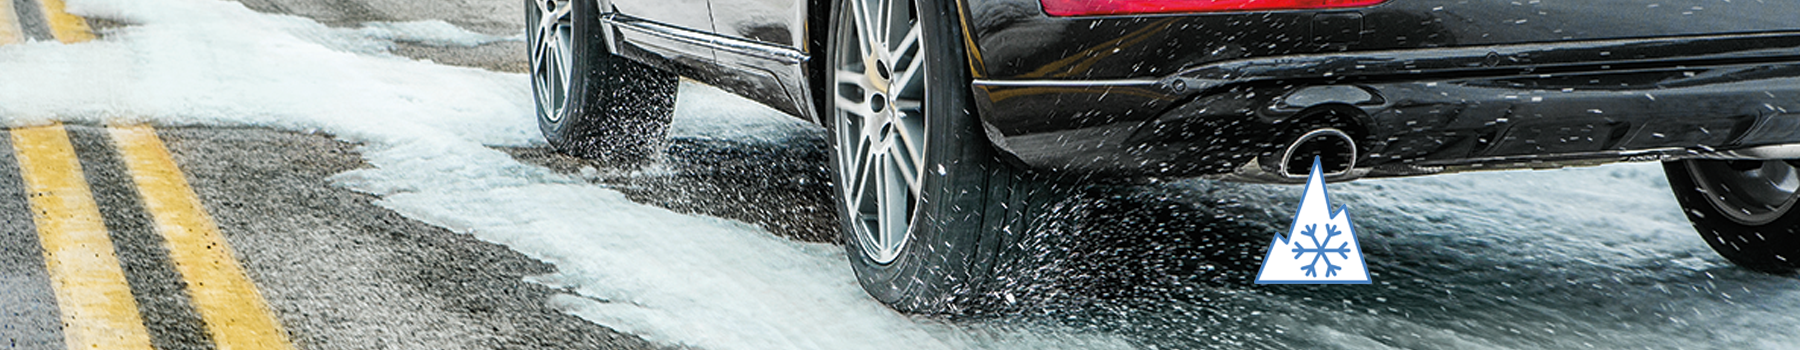 The celsius all weather tire delivers the longevity of an all season tire with enhanced cold weather traction.